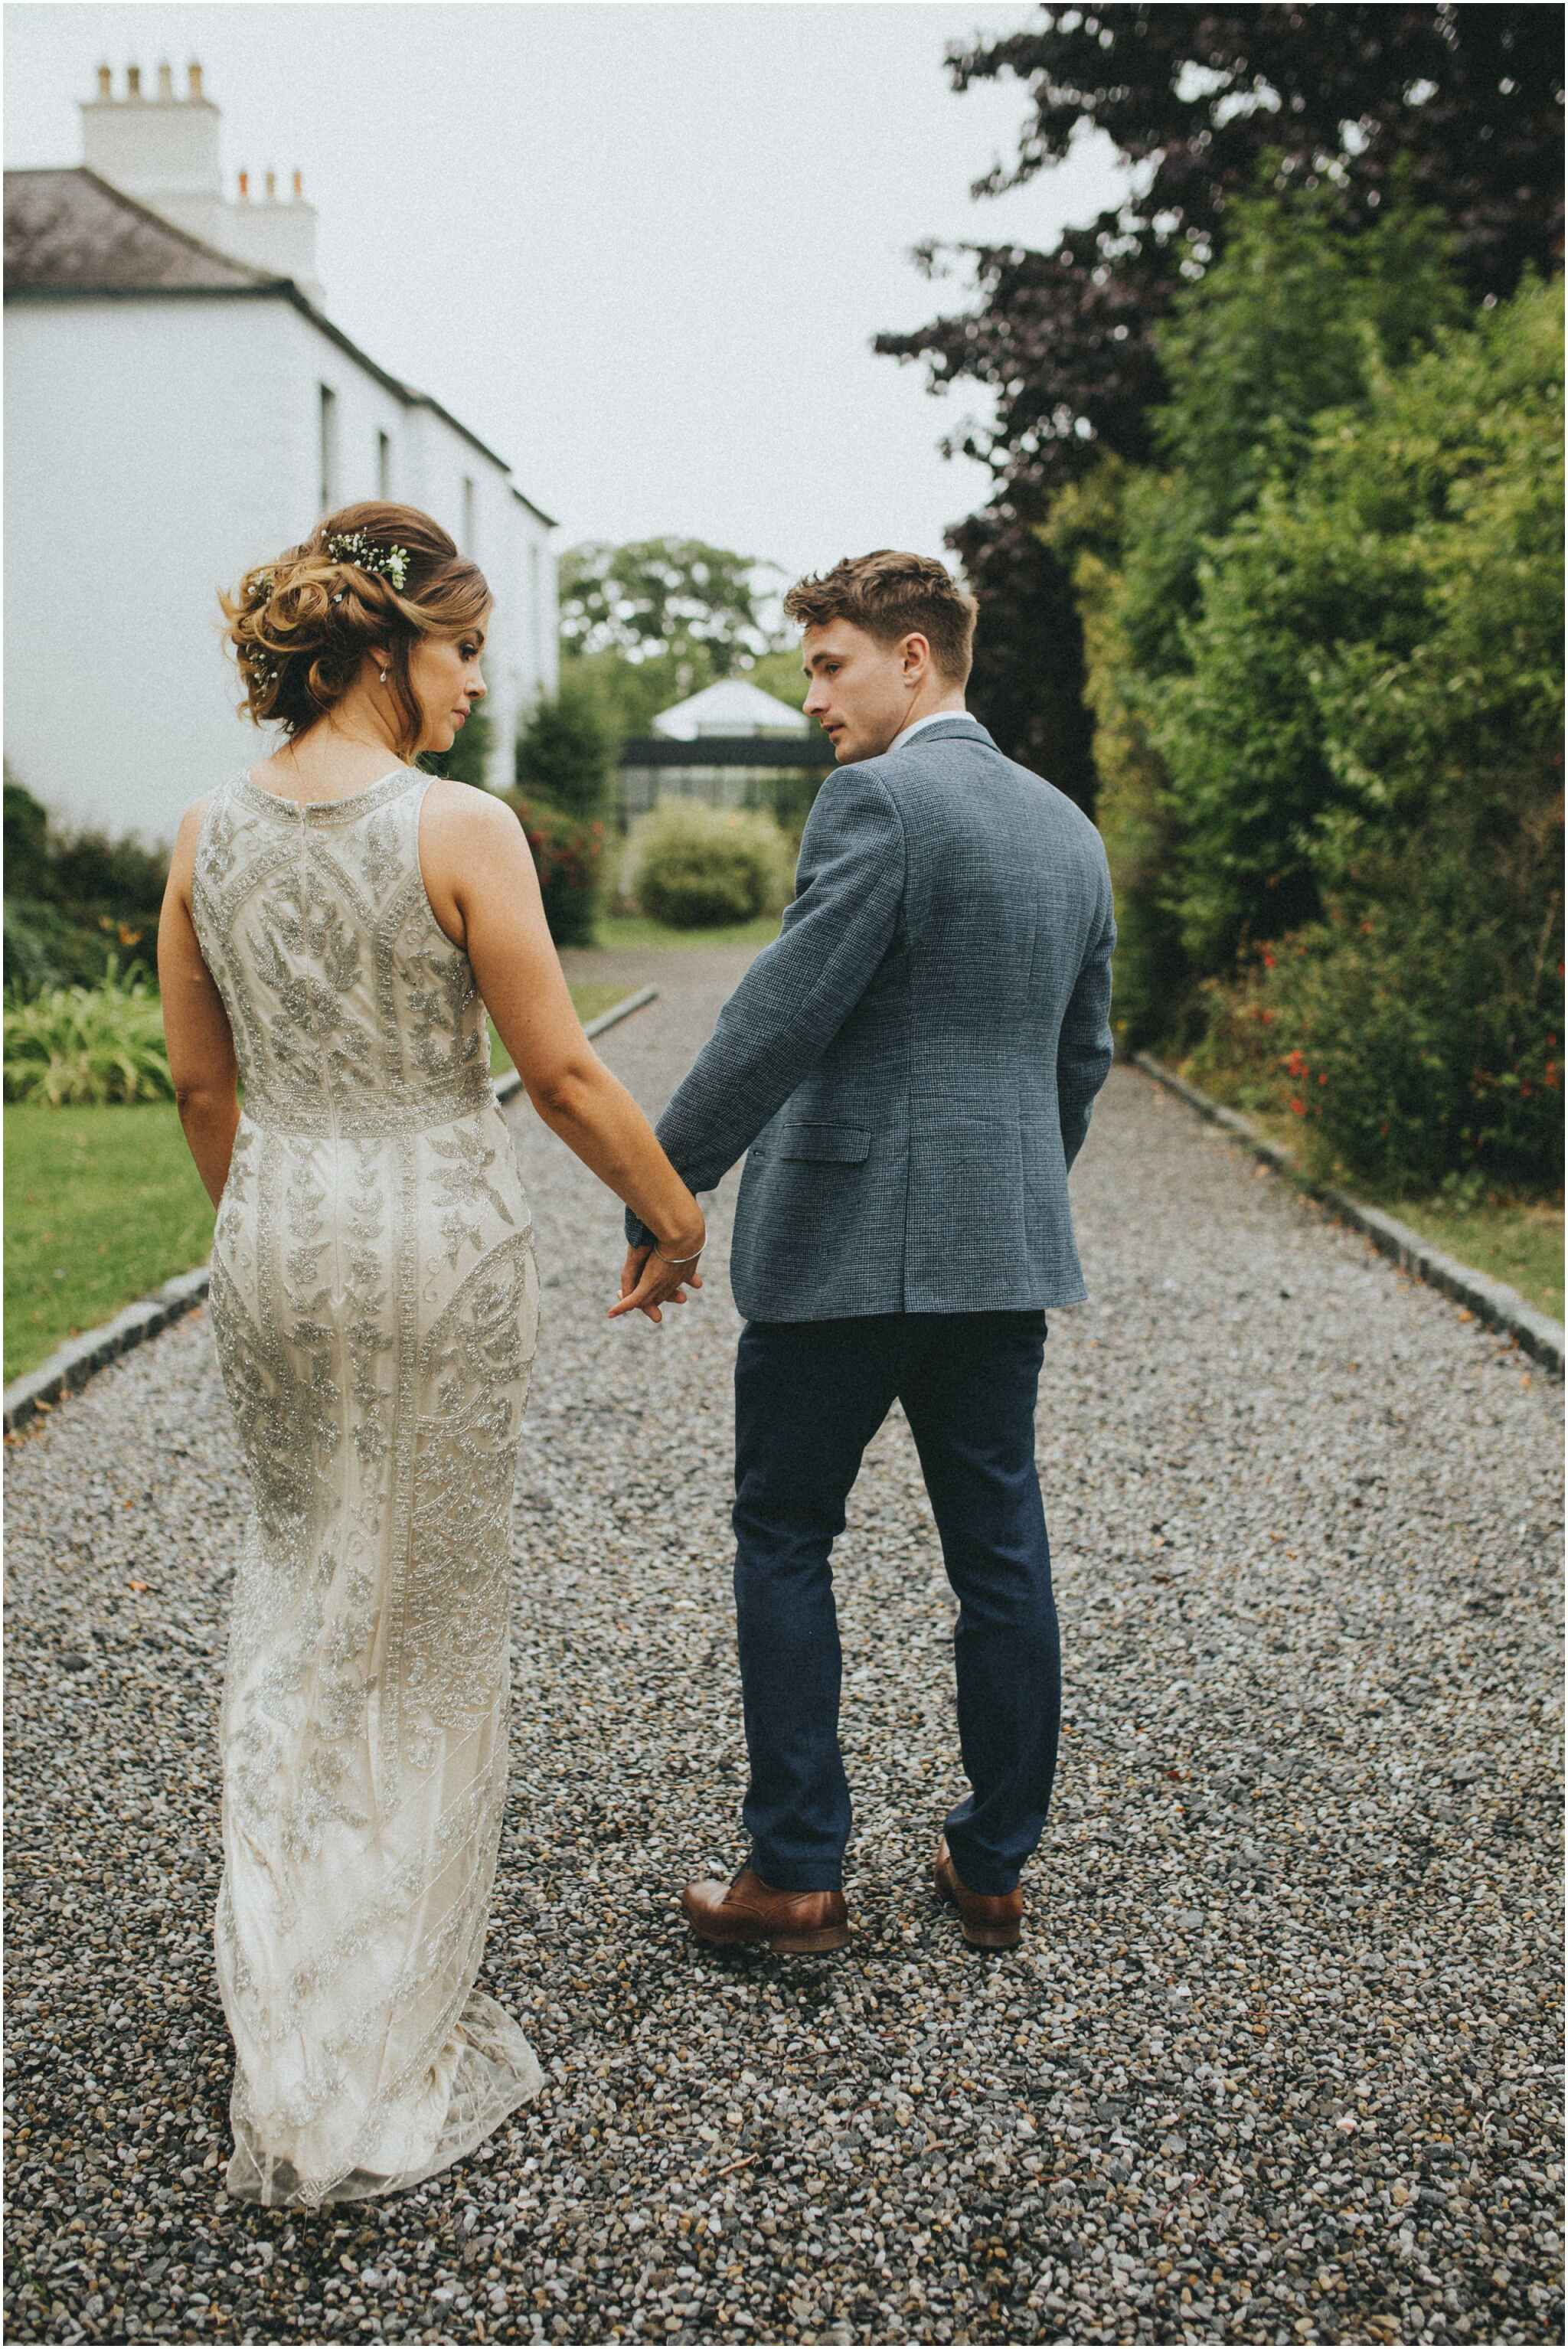 Sharon + Rob – Barberstown Castle 72